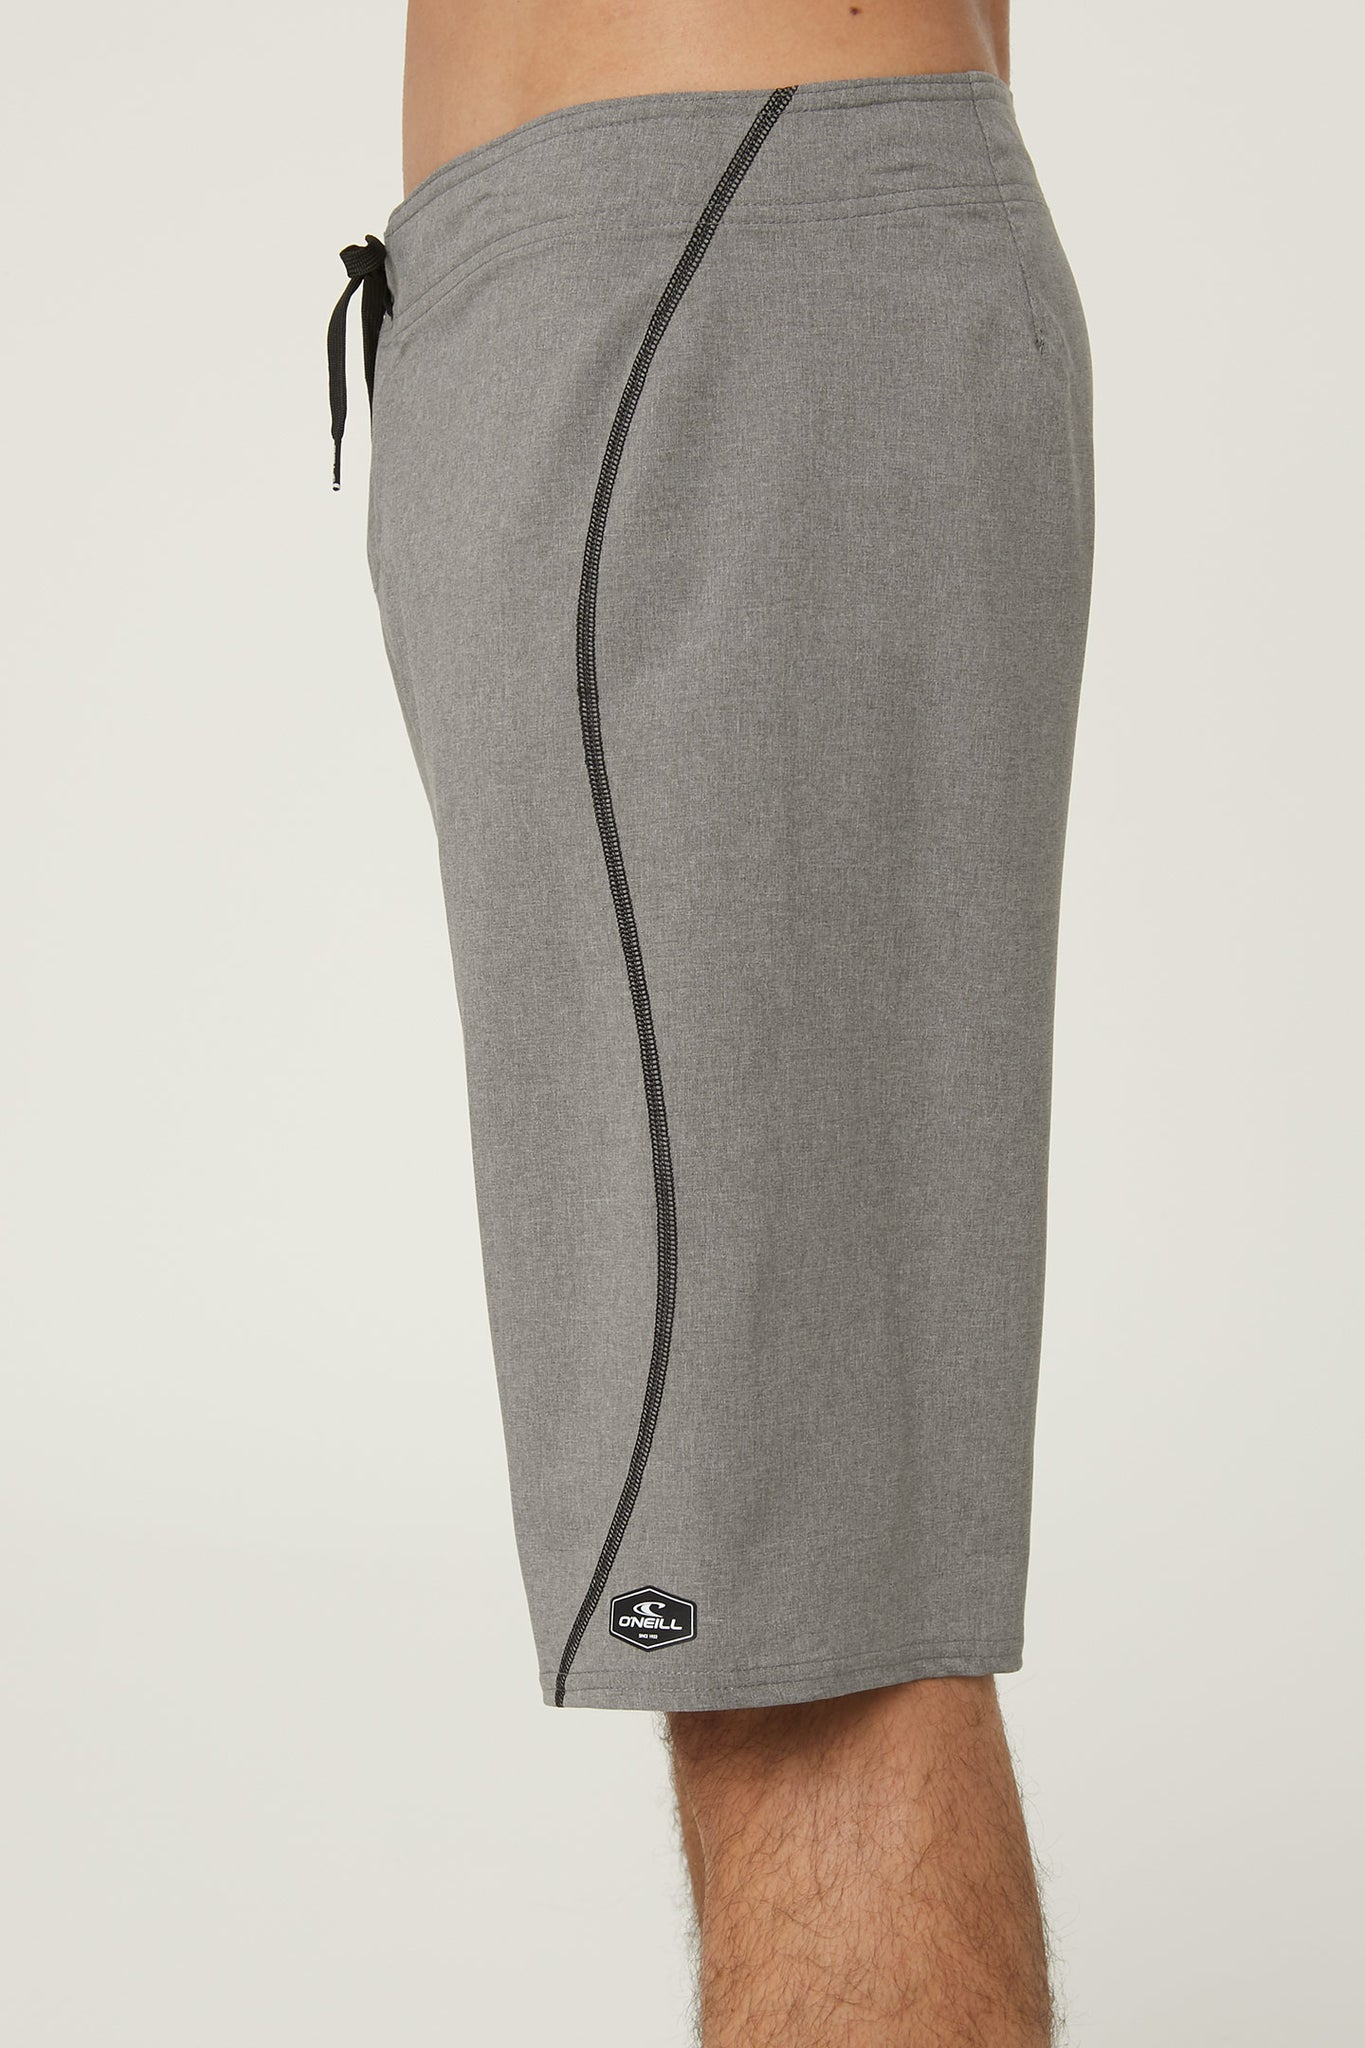 Hyperfreak S Seam Boardshorts - Heather Grey | O'Neill